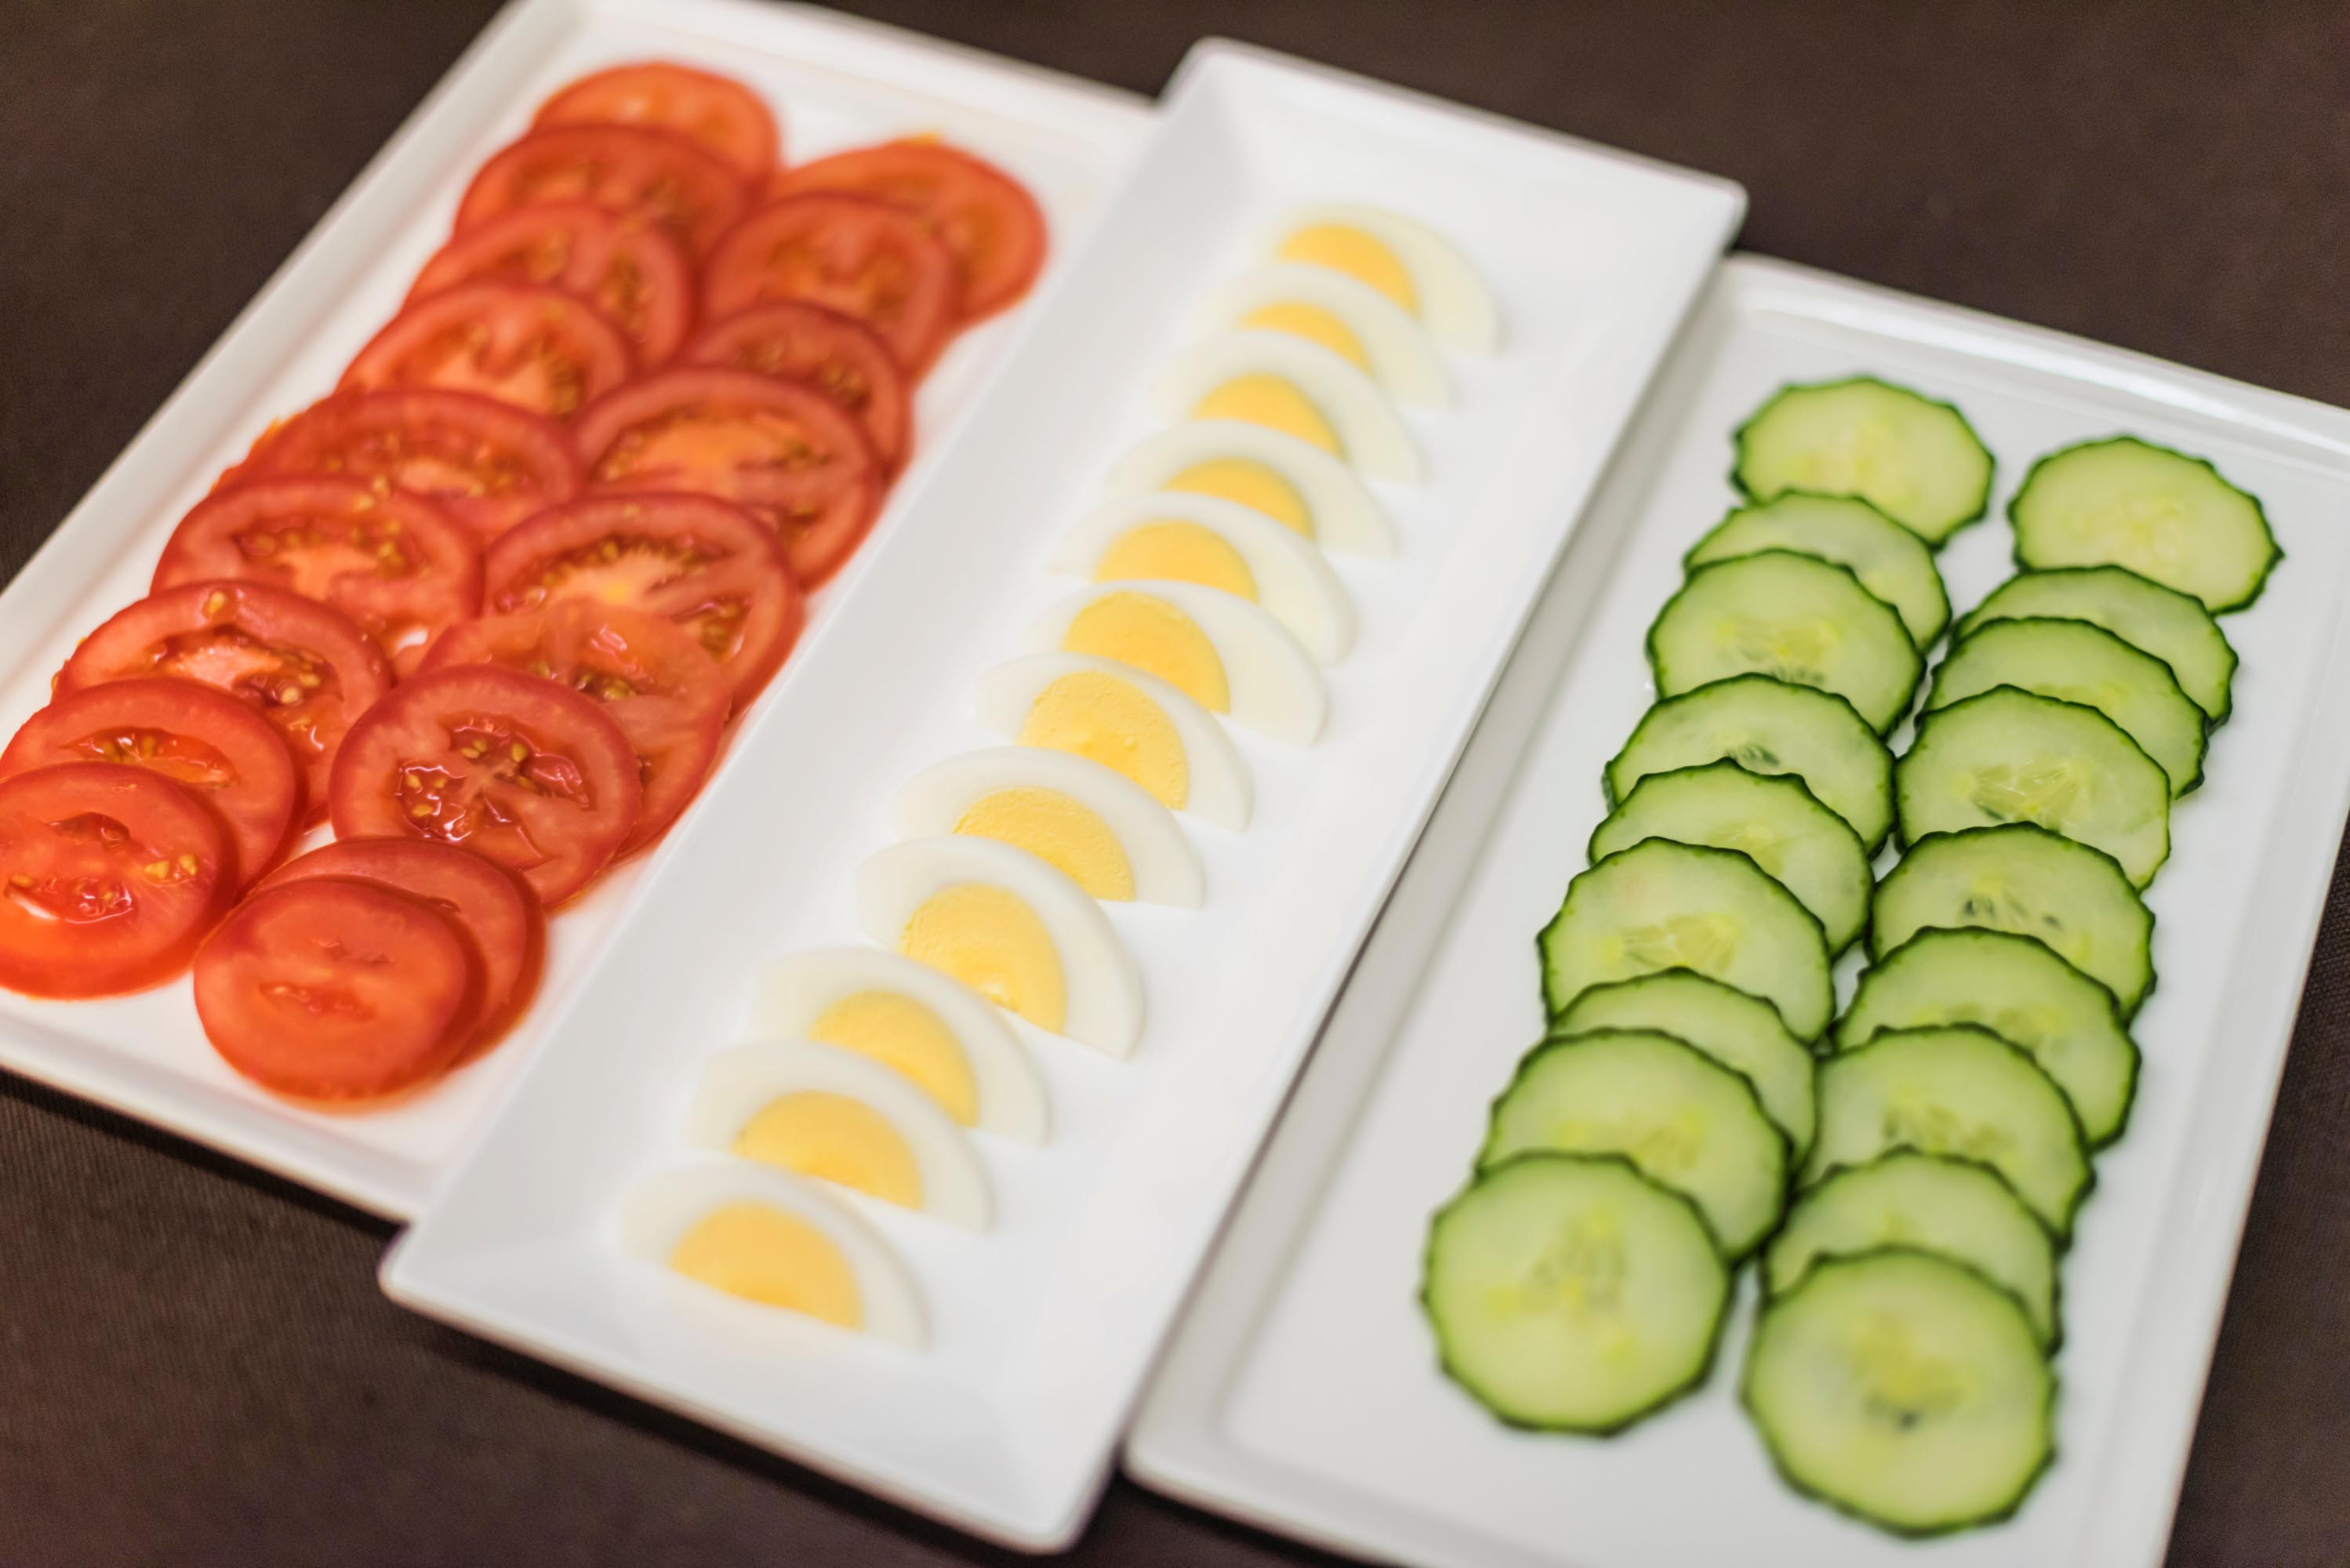 Trays with sliced tomatoes, eggs, and cucumber